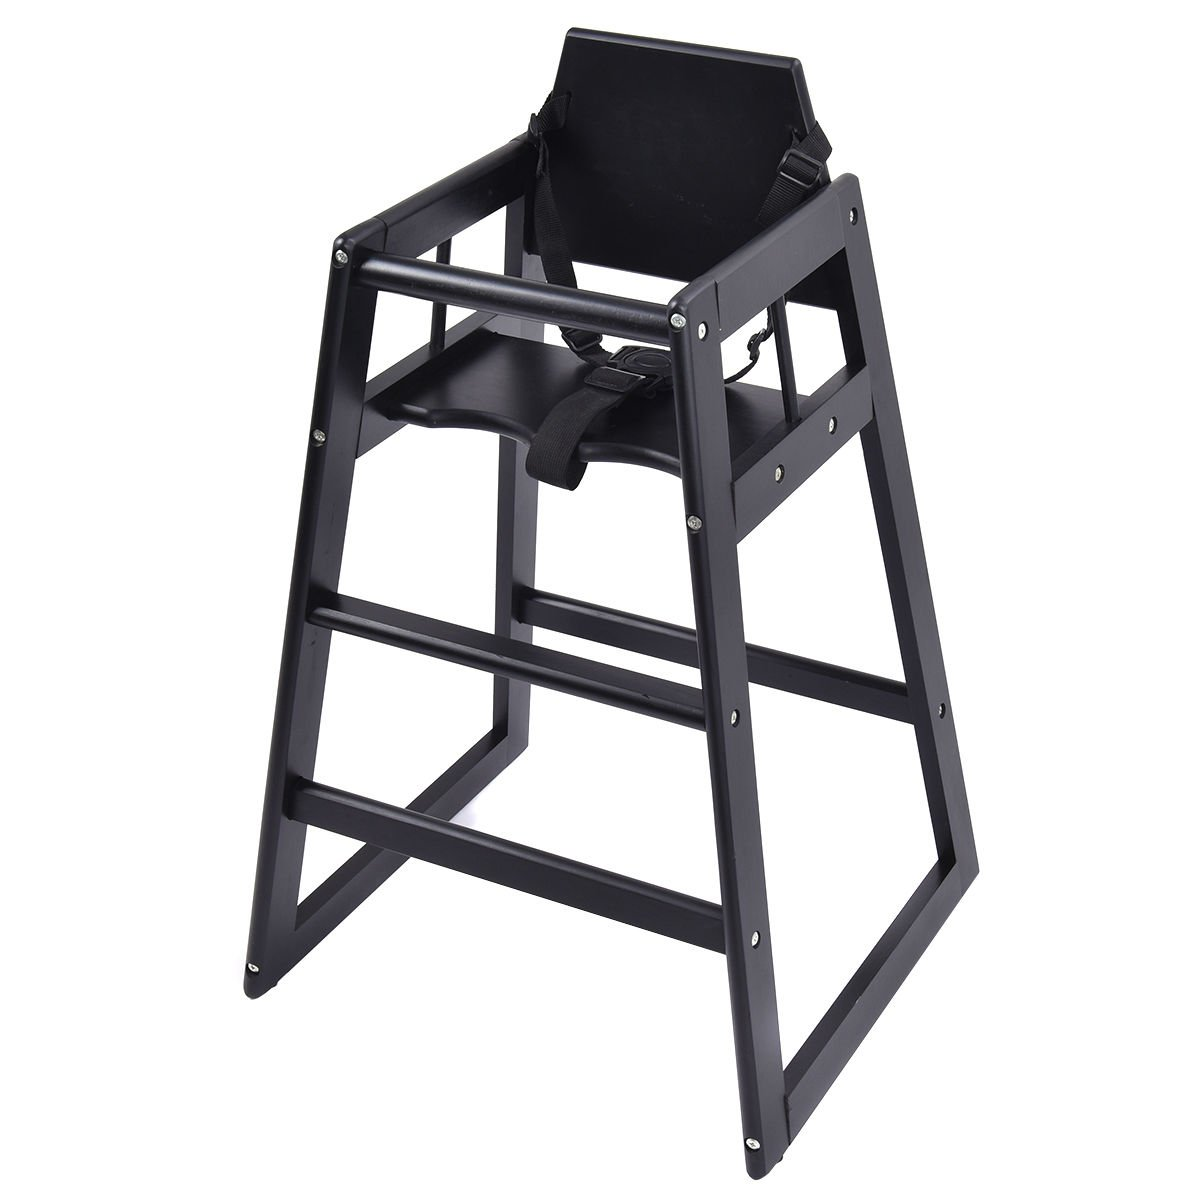 Baby High Chair Infant Toddler Children Feeding Stool Wooden Construction Restaurant Dining Grade Highchair Adjustable Seat Belt And Safety Strap Spacesaver Foot Rest Comfort And Safety